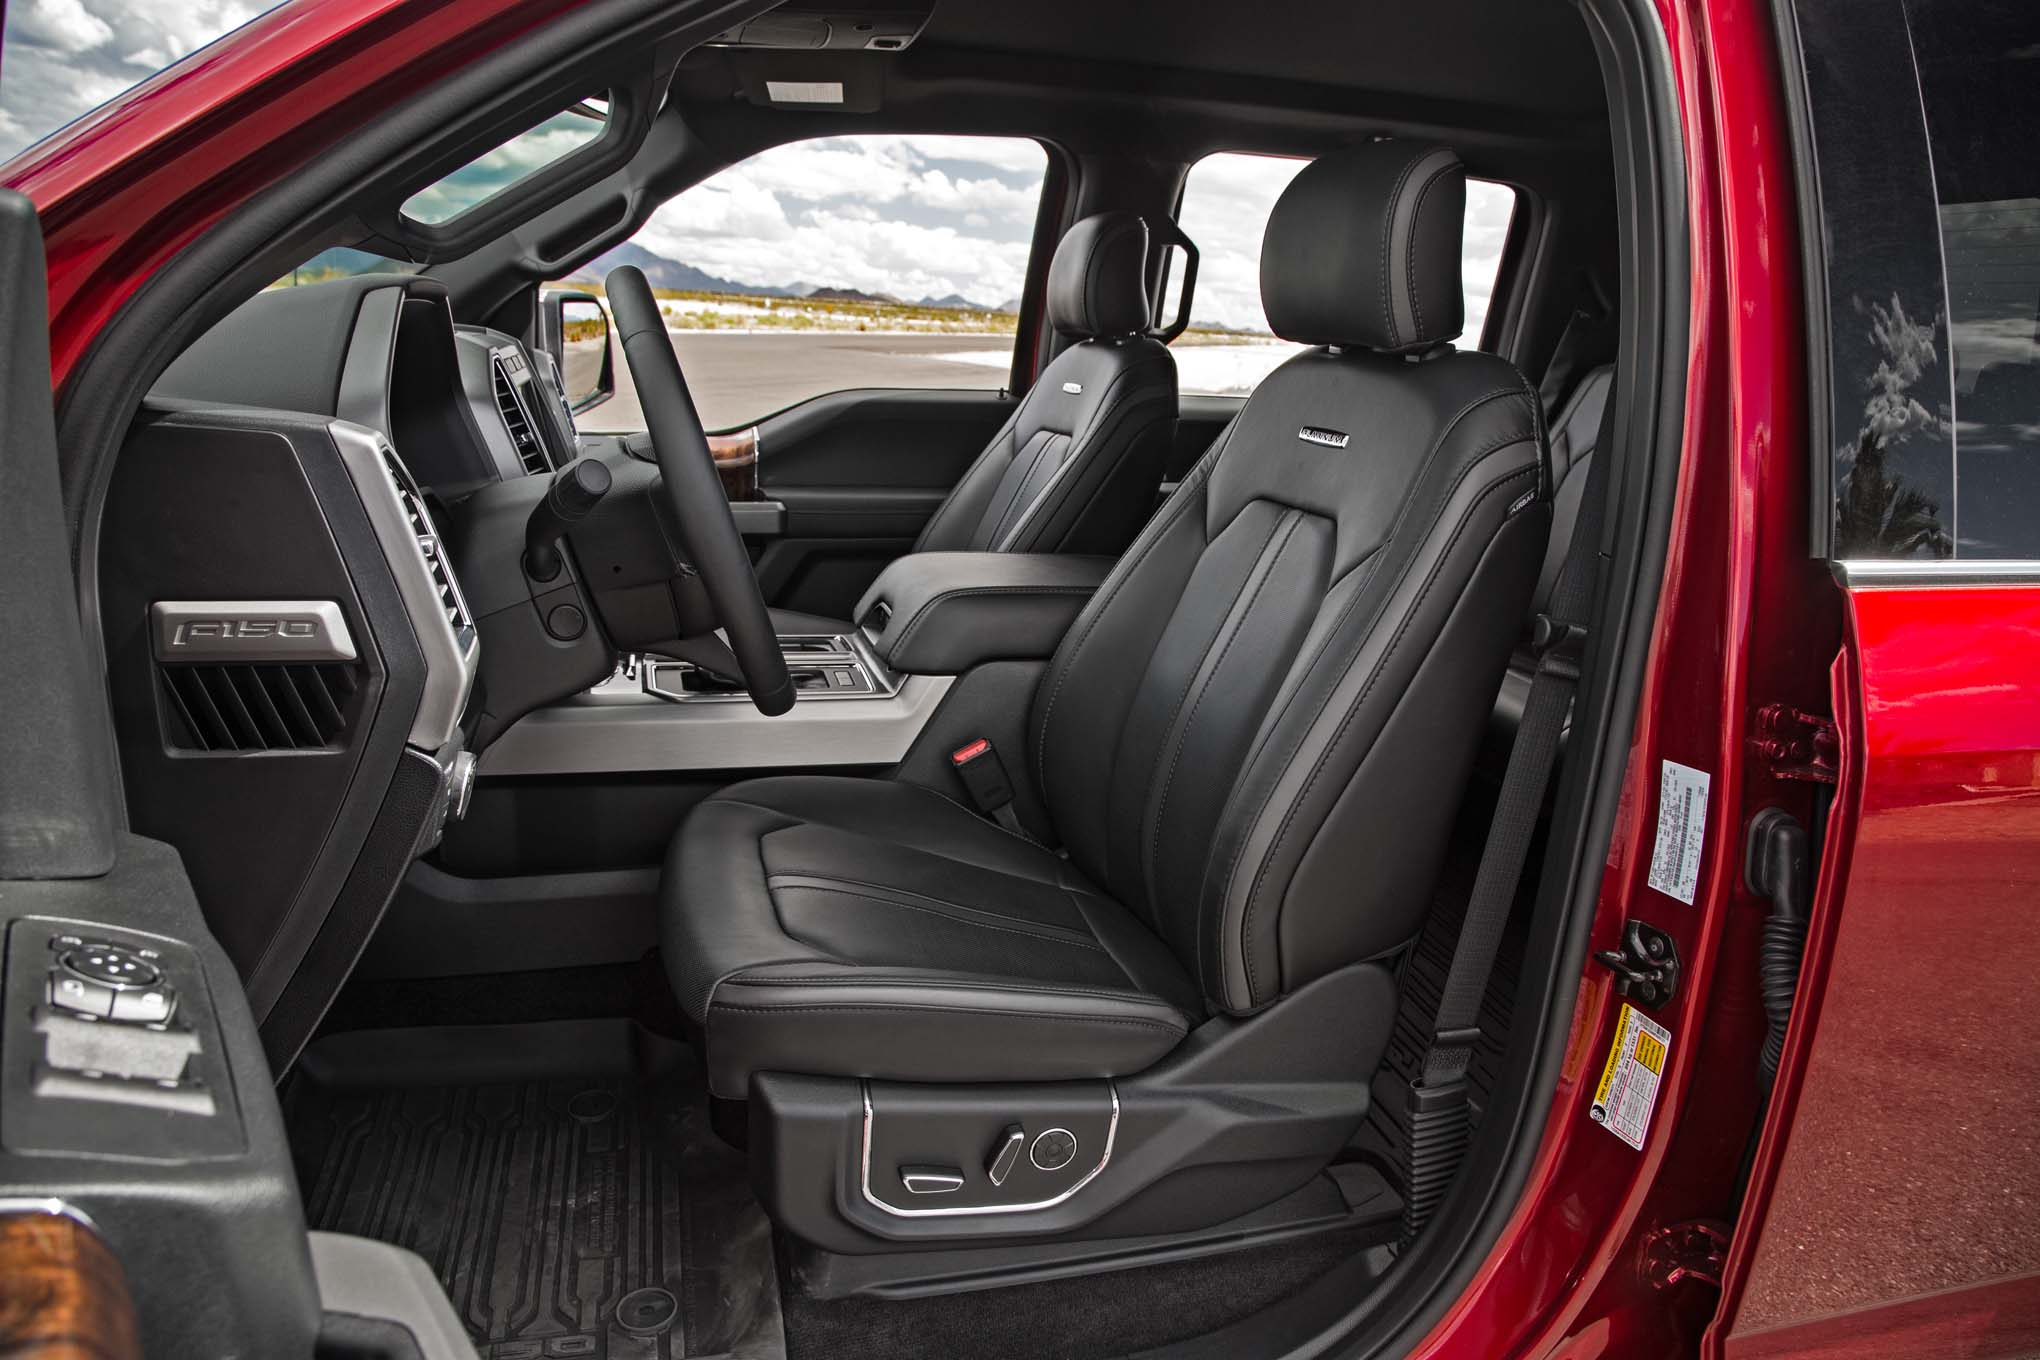 Ford F 150 Platinum Interior >> Ford F 150 Platinum Interior Auto Car Reviews 2019 2020